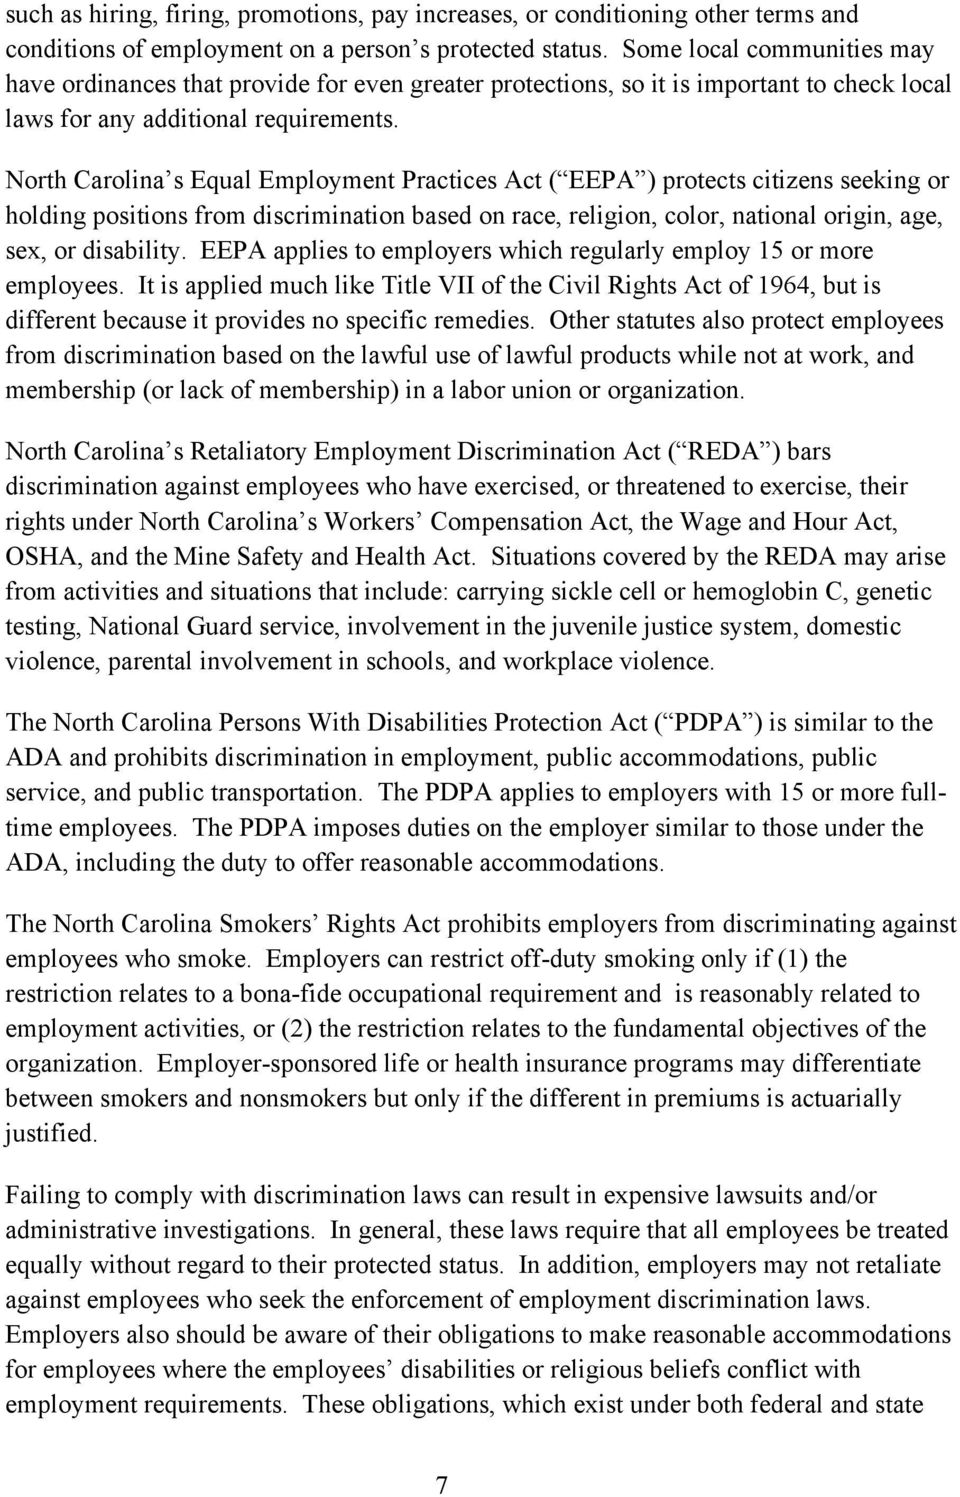 North Carolina s Equal Employment Practices Act ( EEPA ) protects citizens seeking or holding positions from discrimination based on race, religion, color, national origin, age, sex, or disability.